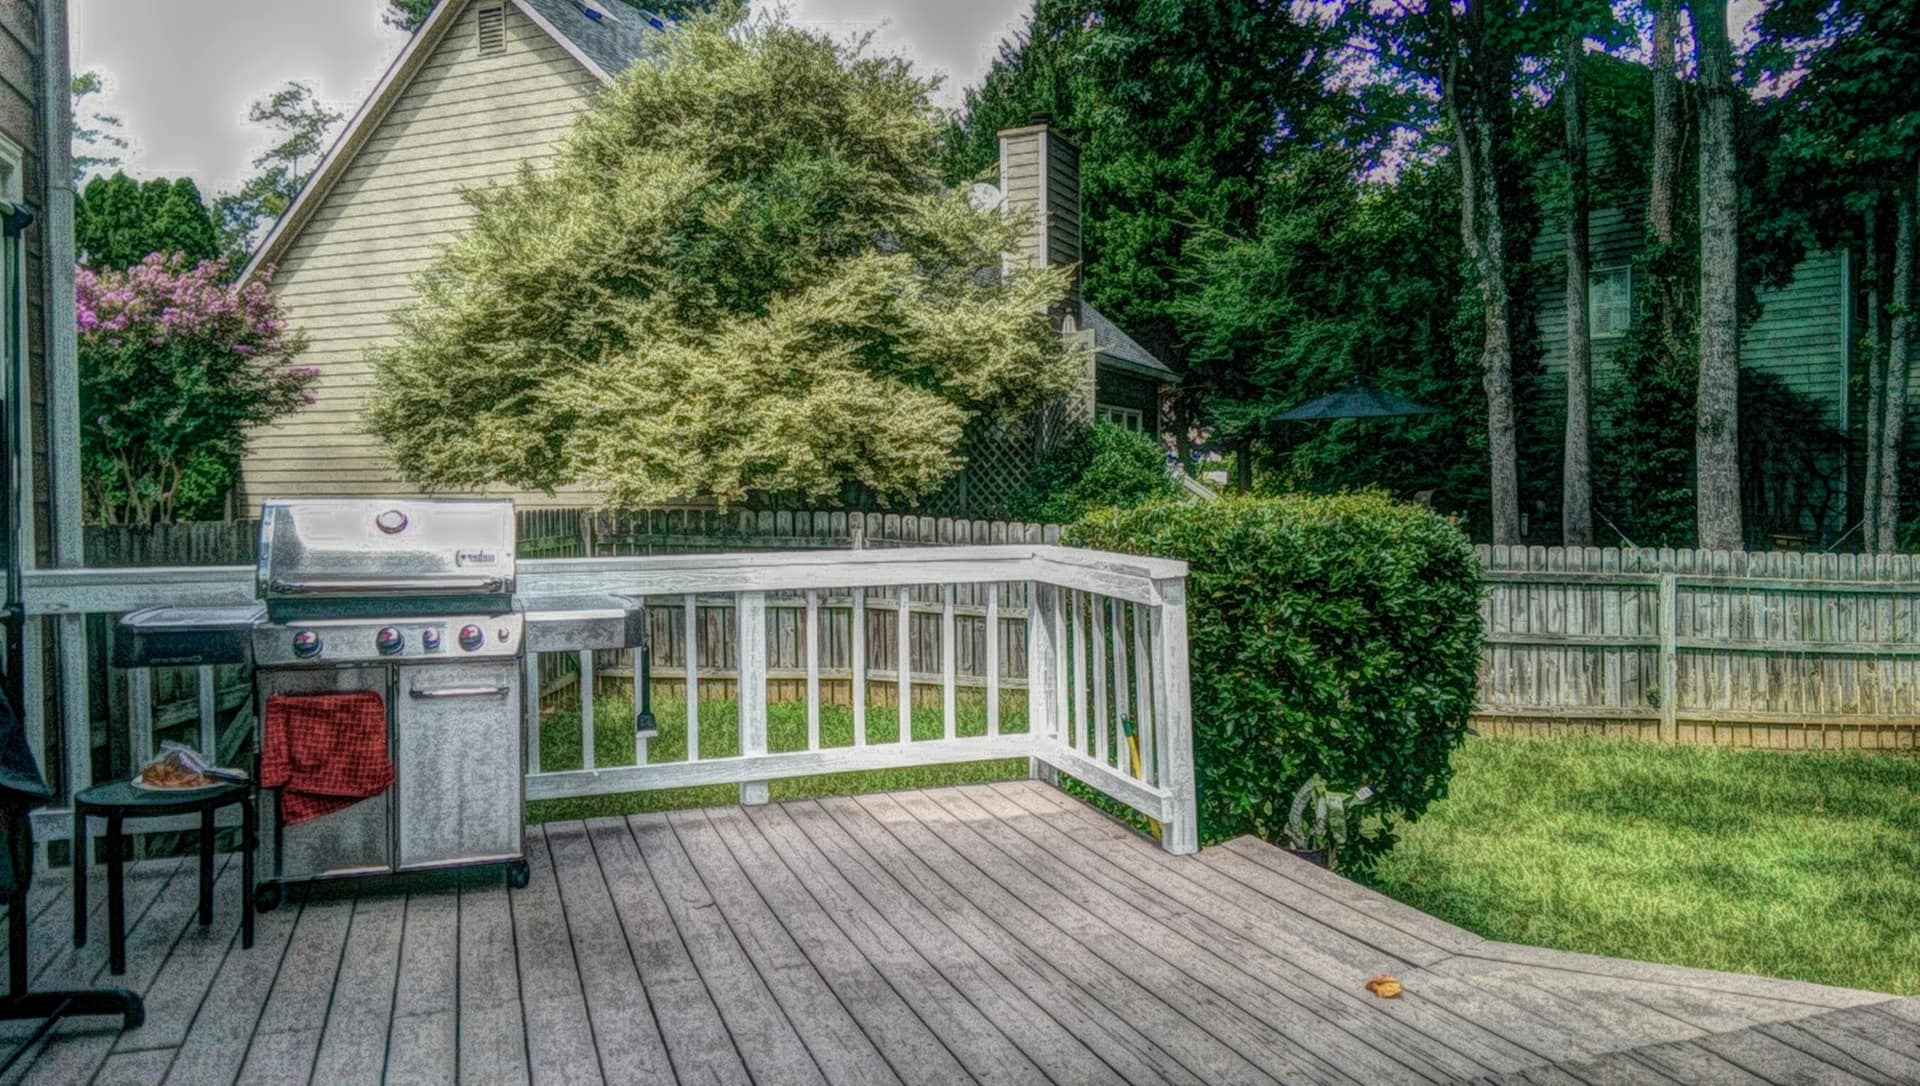 Amazing Ideas for Outdoor Gas Grills Designs That's Within the Budget